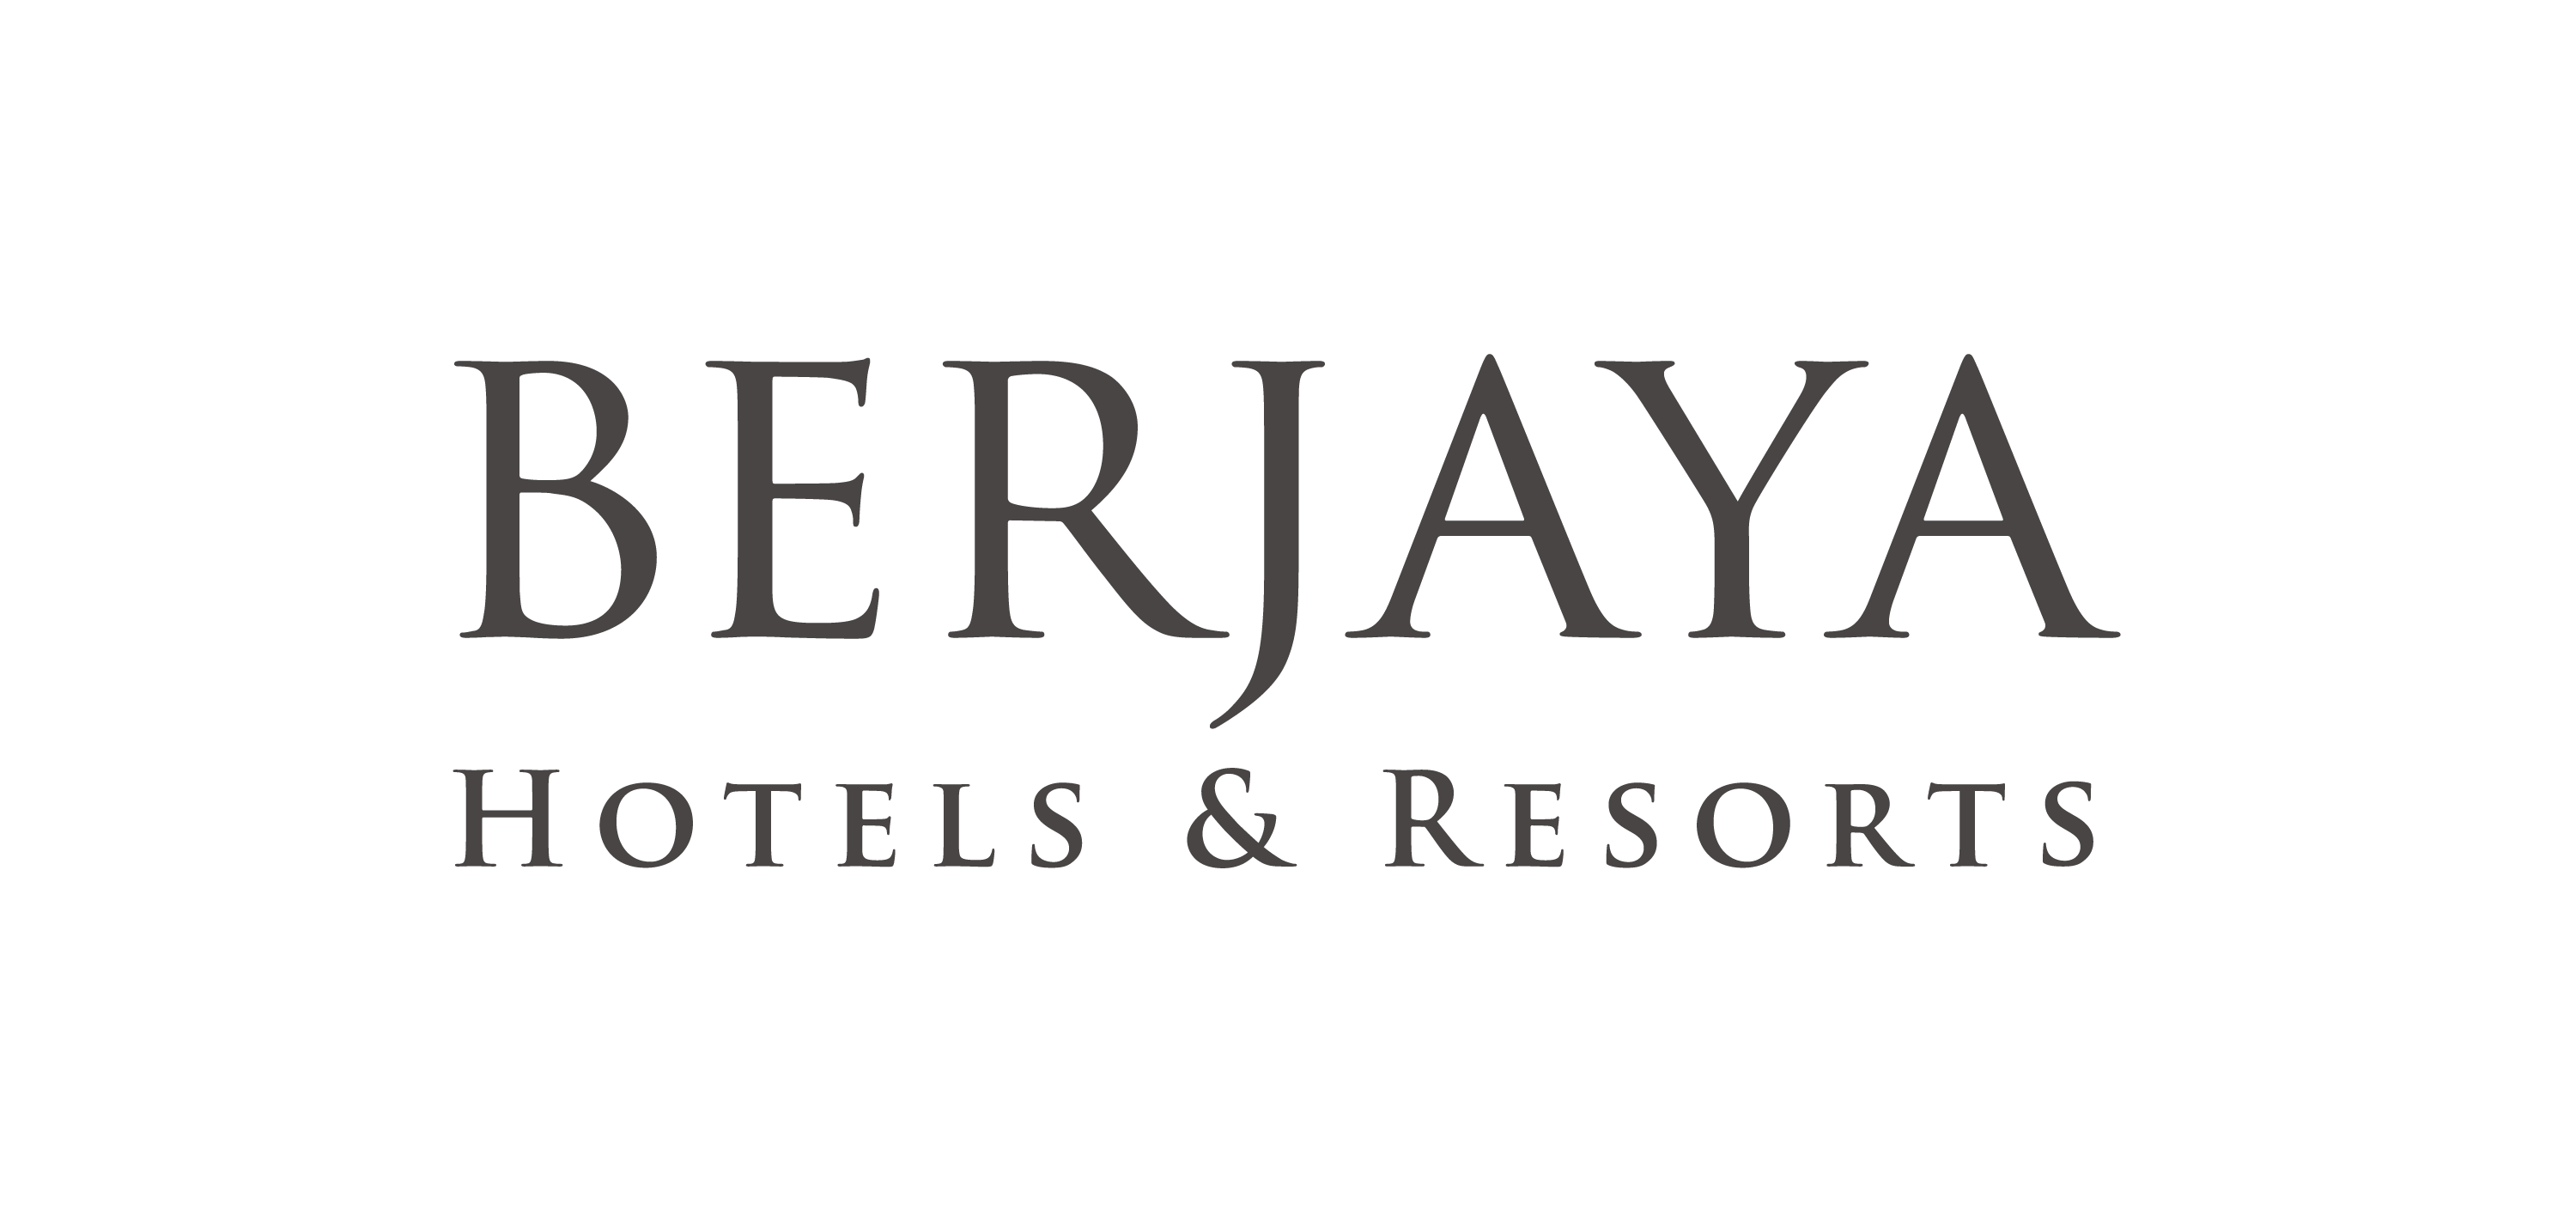 berjaya hotels and resort Logo Vector Download